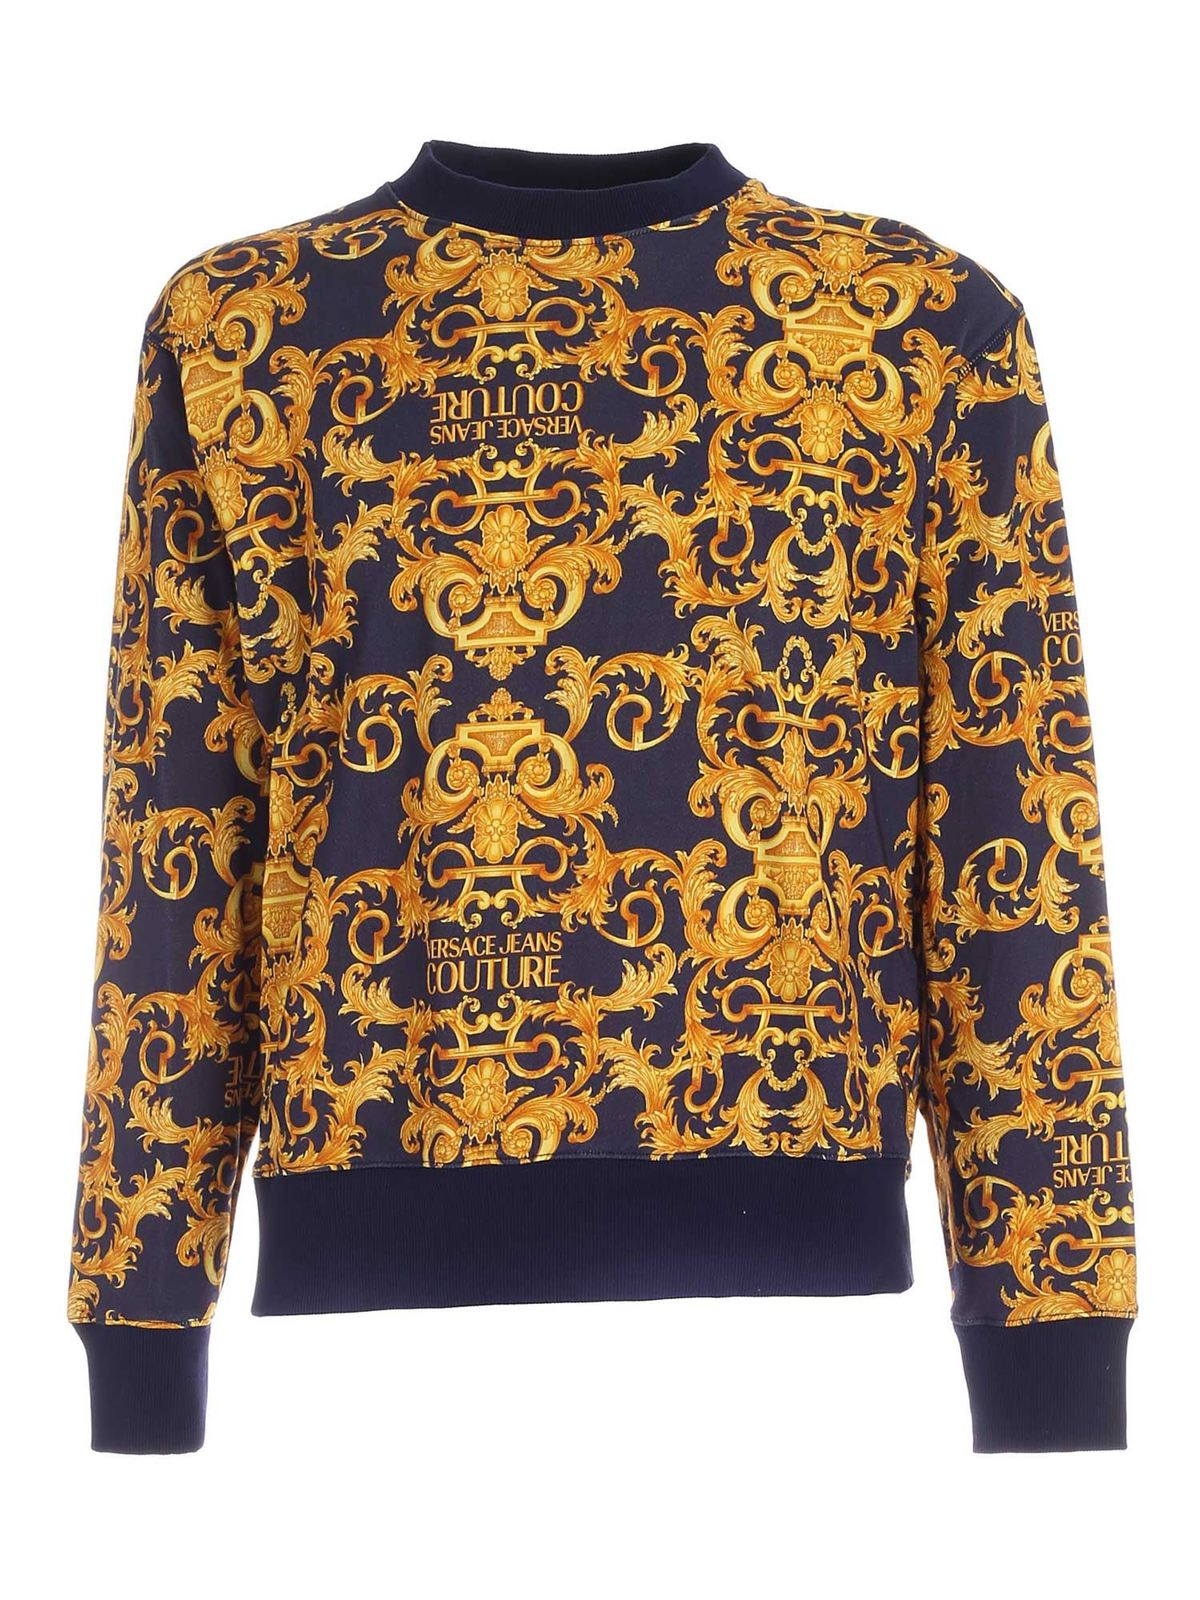 VERSACE JEANS COUTURE BAROQUE LOGO PRINT SWEATSHIRT IN BLUE